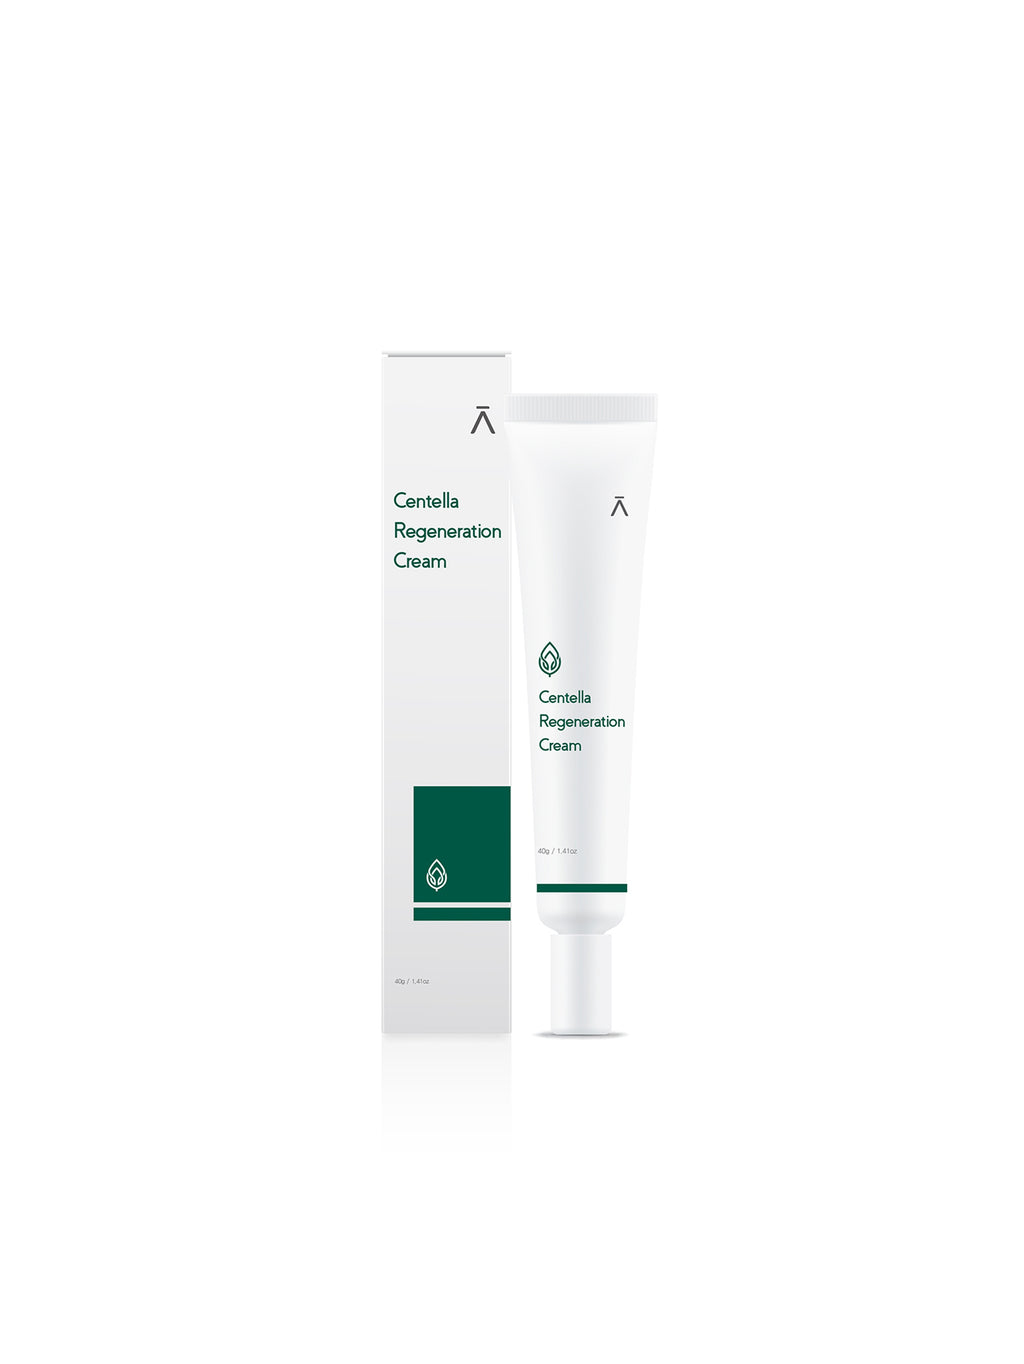 Centella Regeneration Cream (Post Procedure Cream) Postcare by DERMABELL PRO